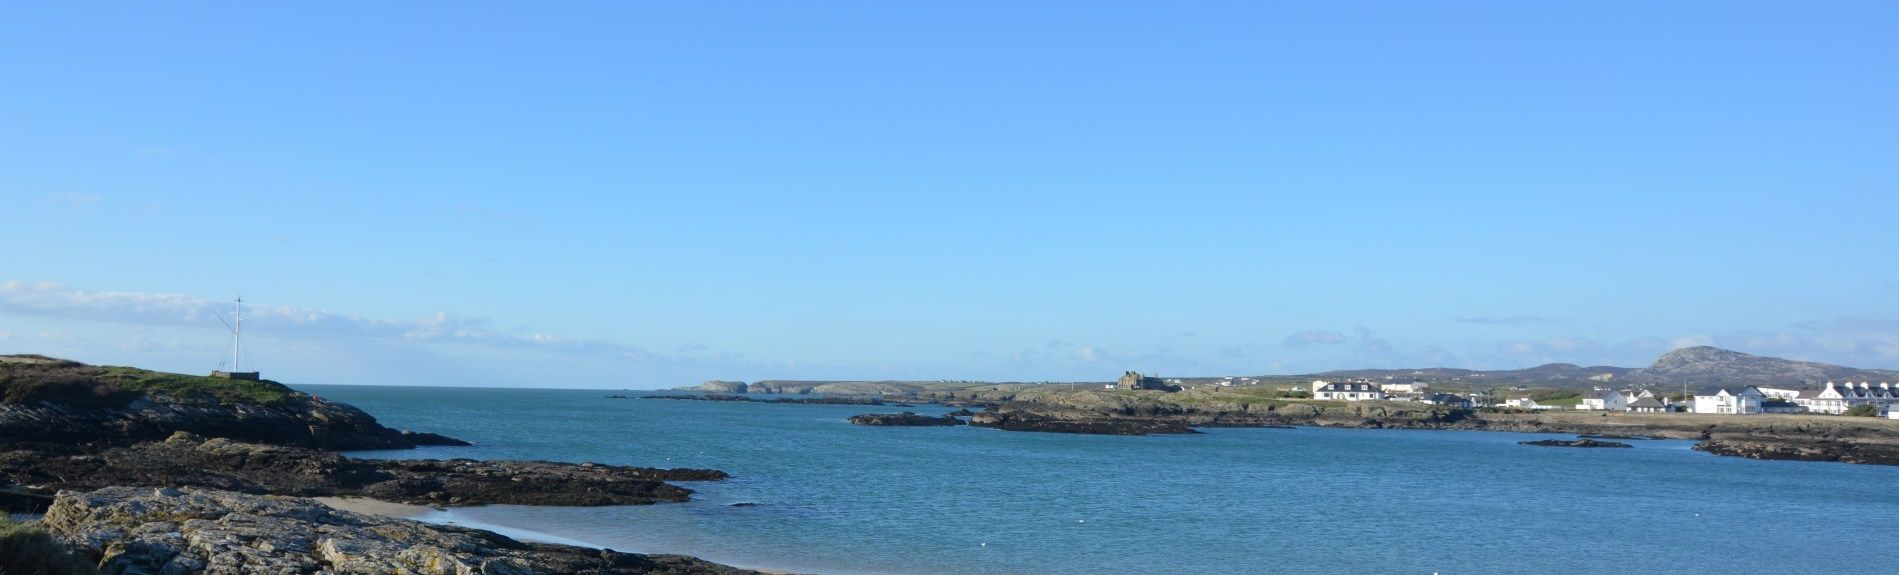 Cemaes Bay, Isle of Anglesey, UK